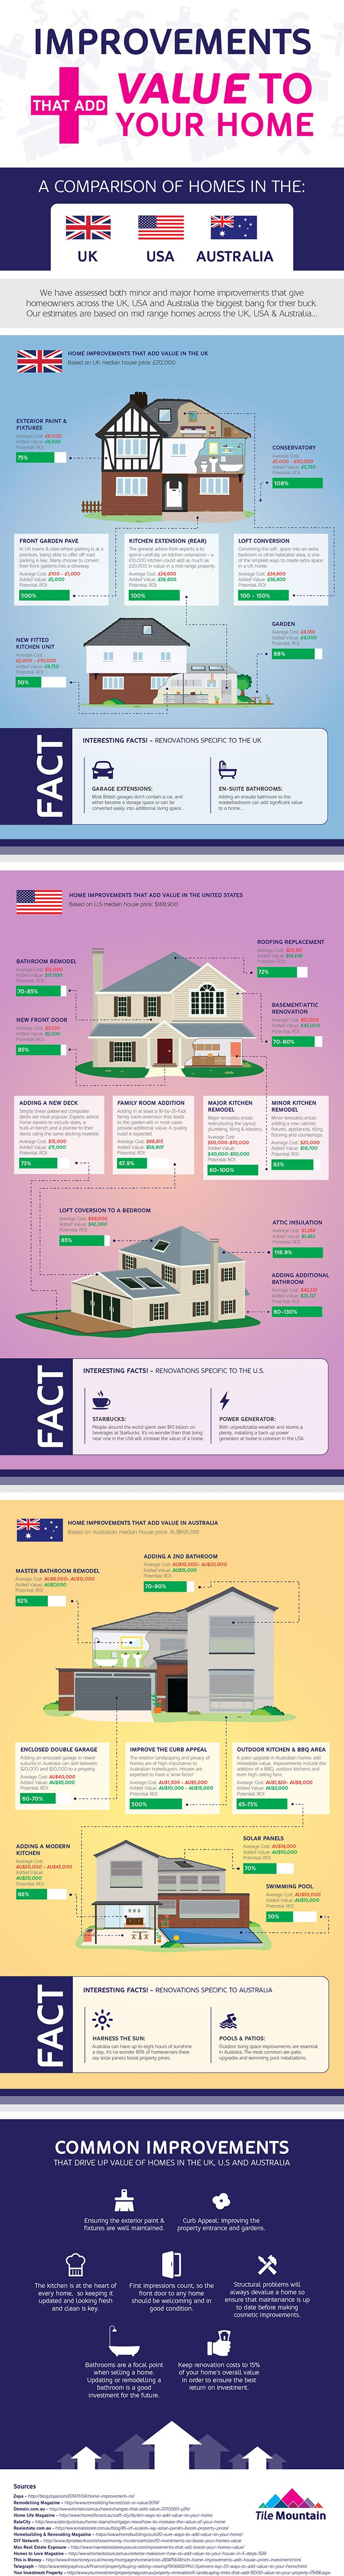 Improvements That Add Value to Your House #Infographic